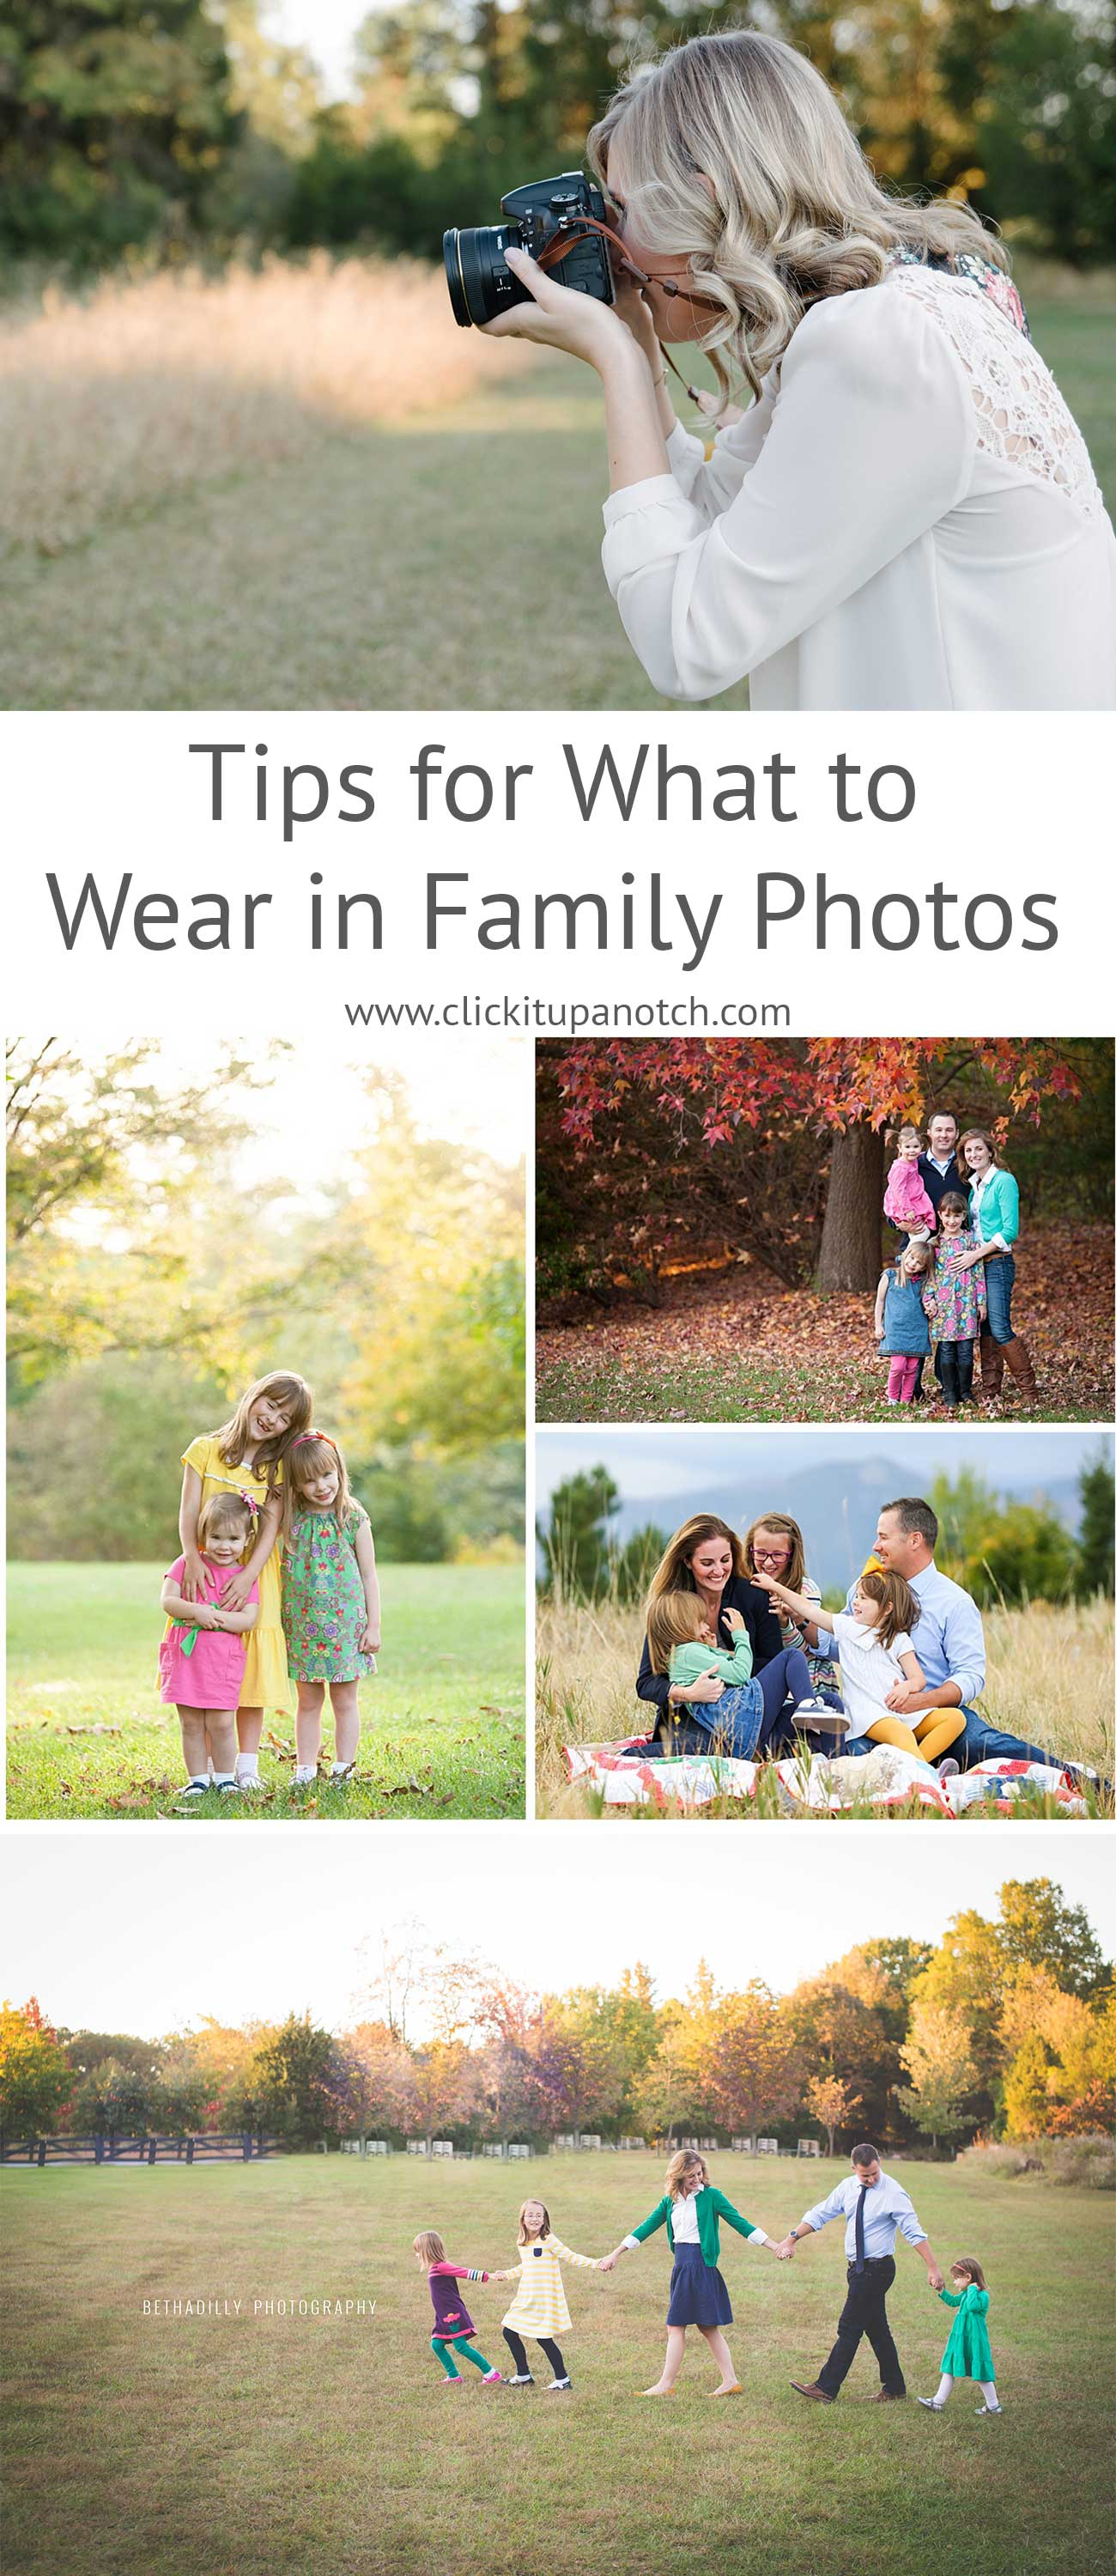 11 tips for what to wear in family photos gone are the days of matchy